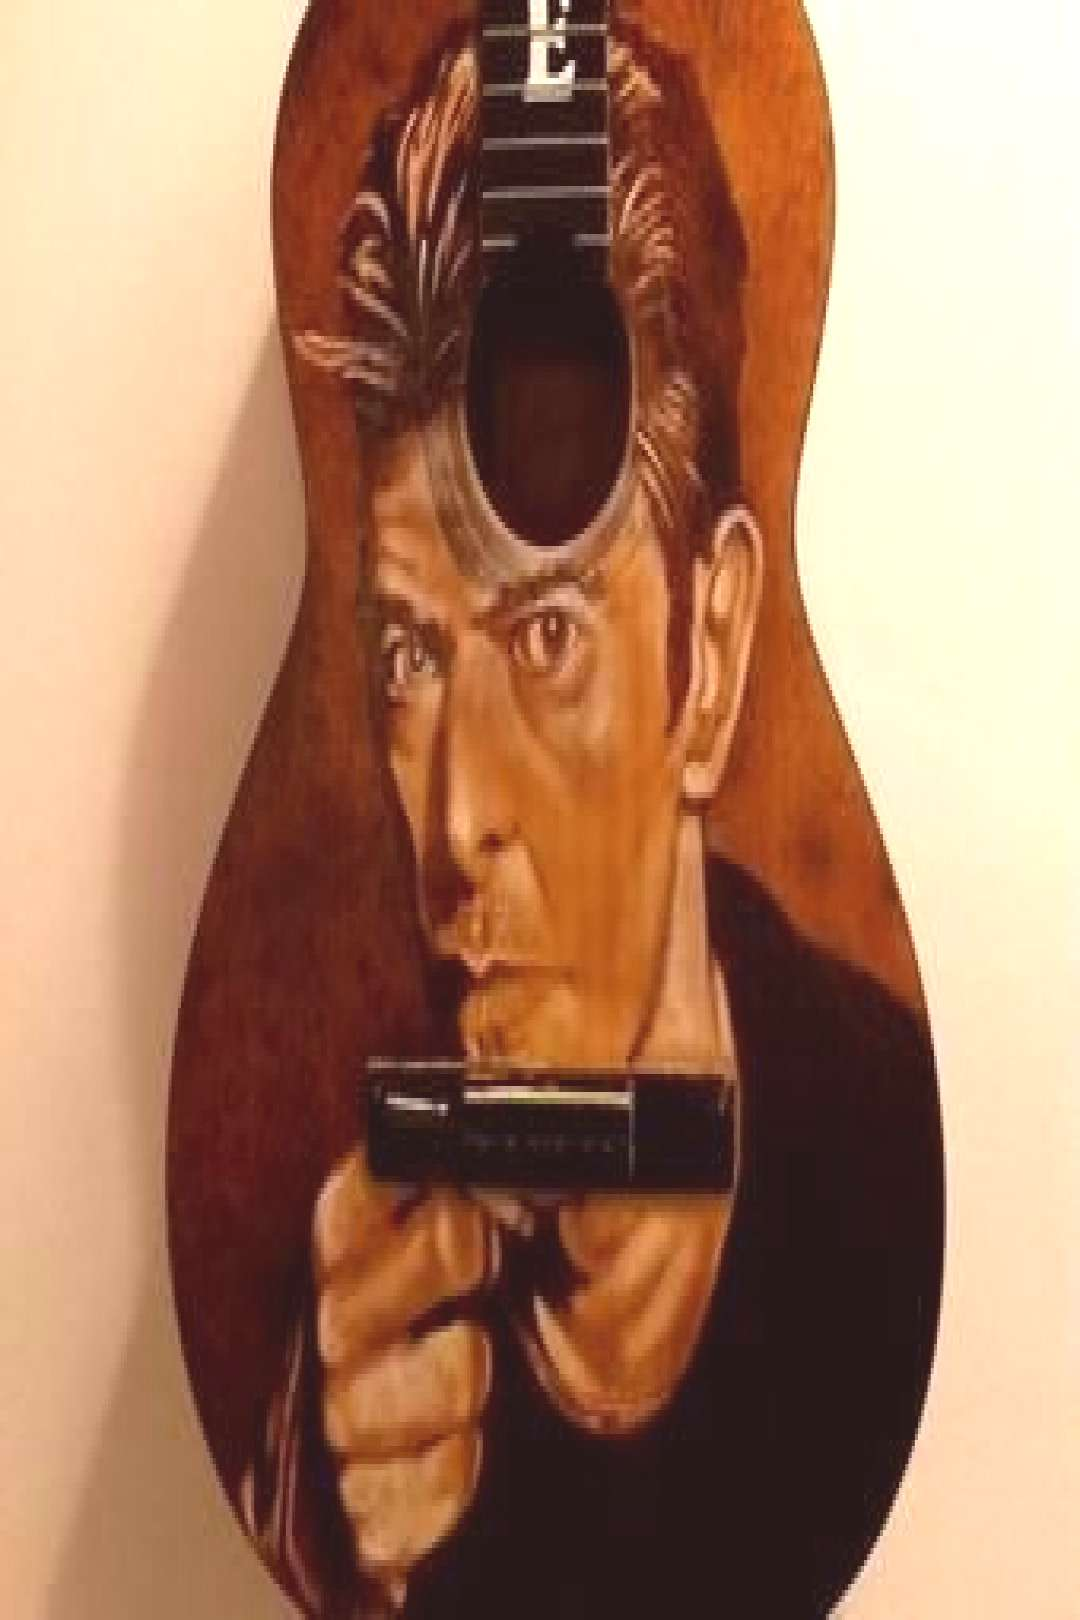 Painted Guitars Art Abstract painting pyrography de DelpuebloArt